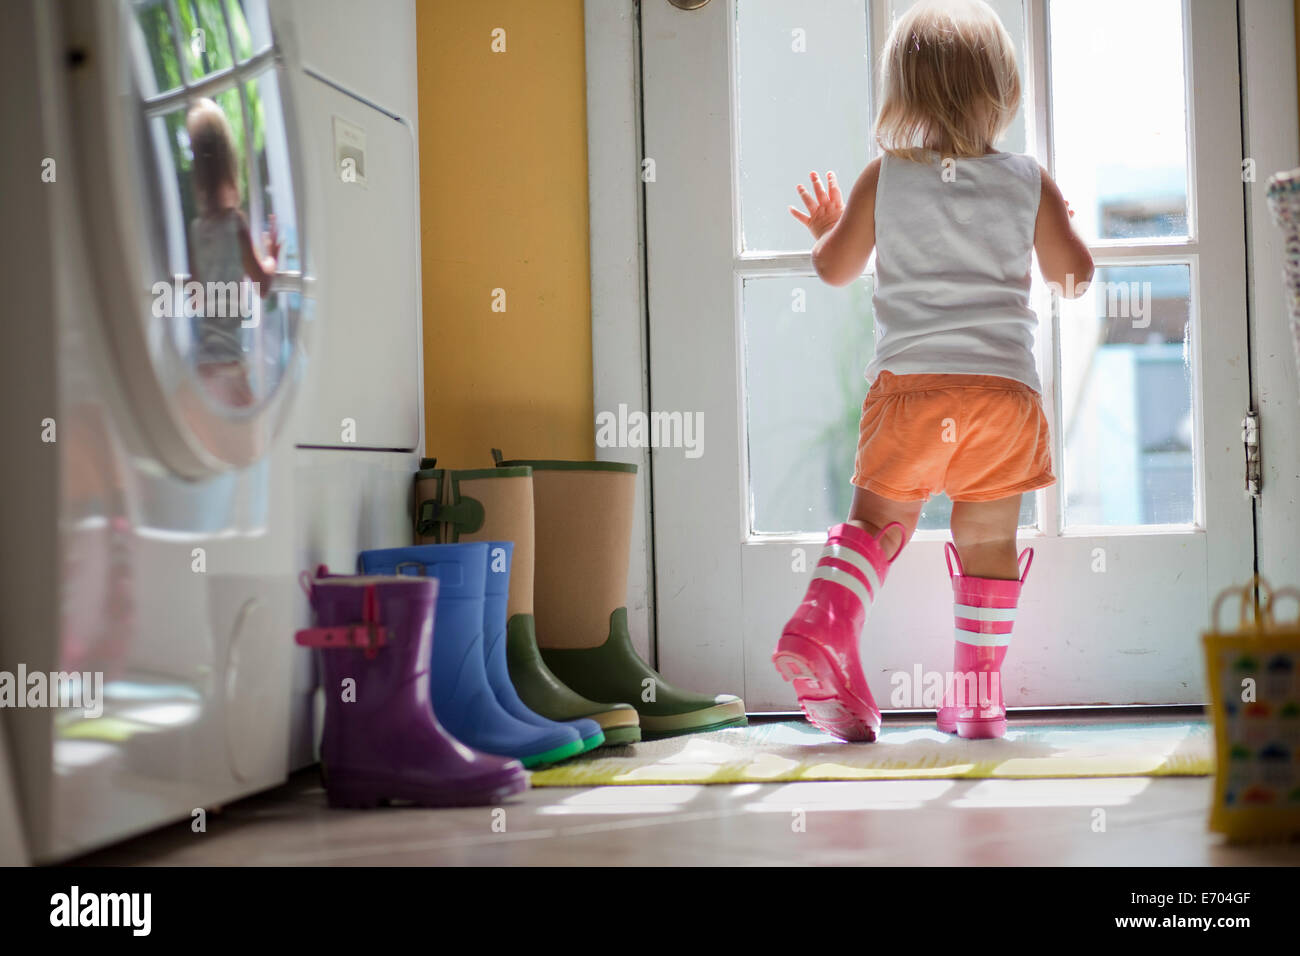 Female toddler wearing rubber boots looking out of back door window - Stock Image